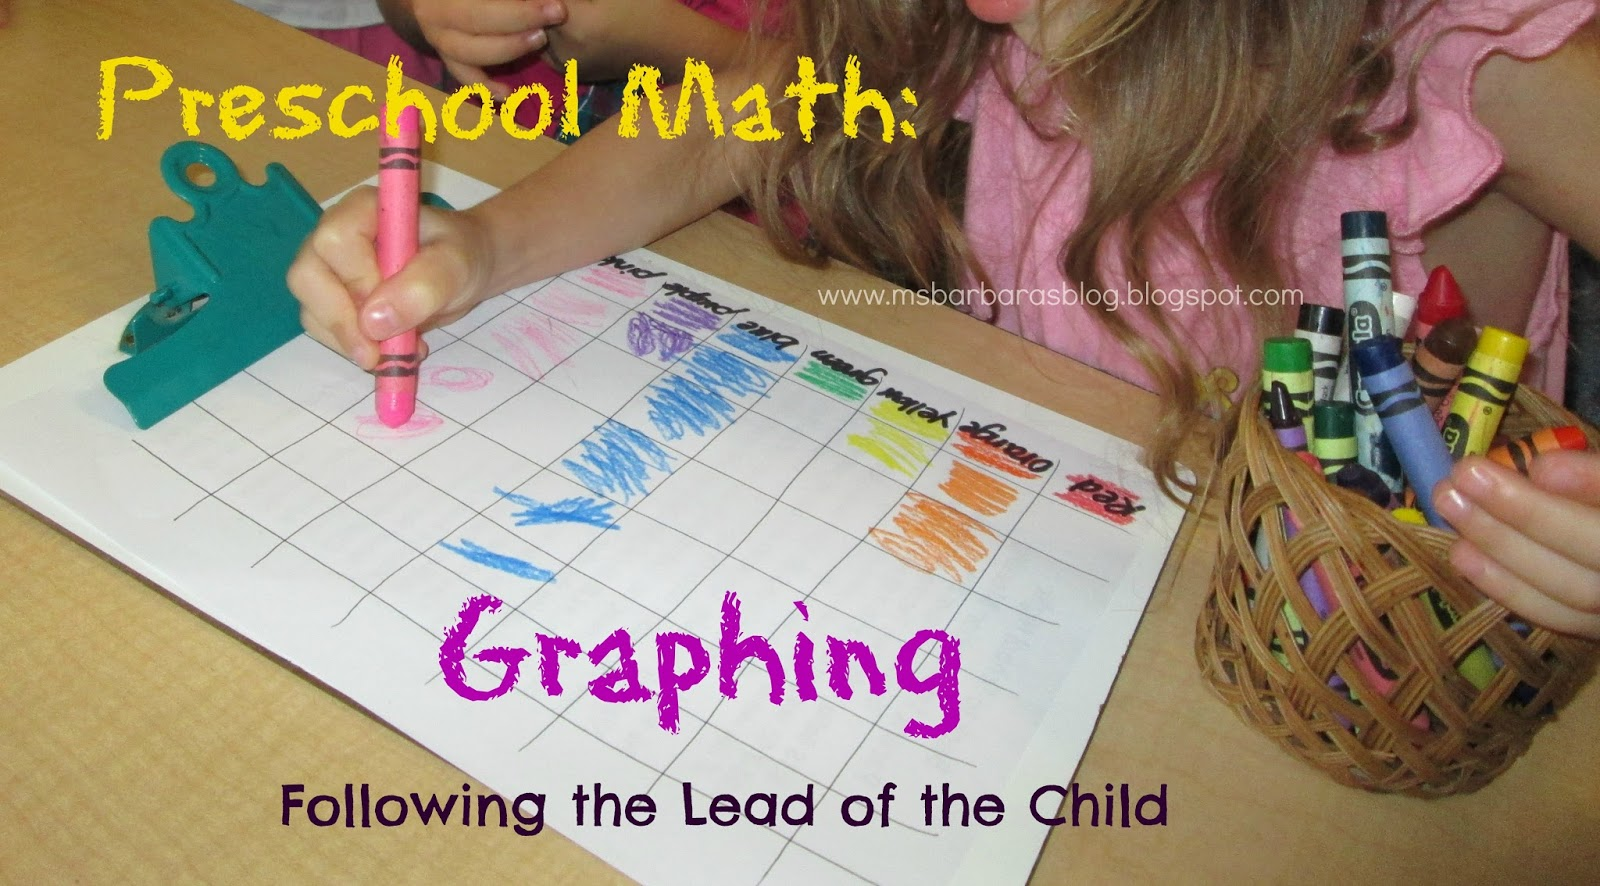 For The Children Preschool Math Graphing And Following The Lead Of The Child